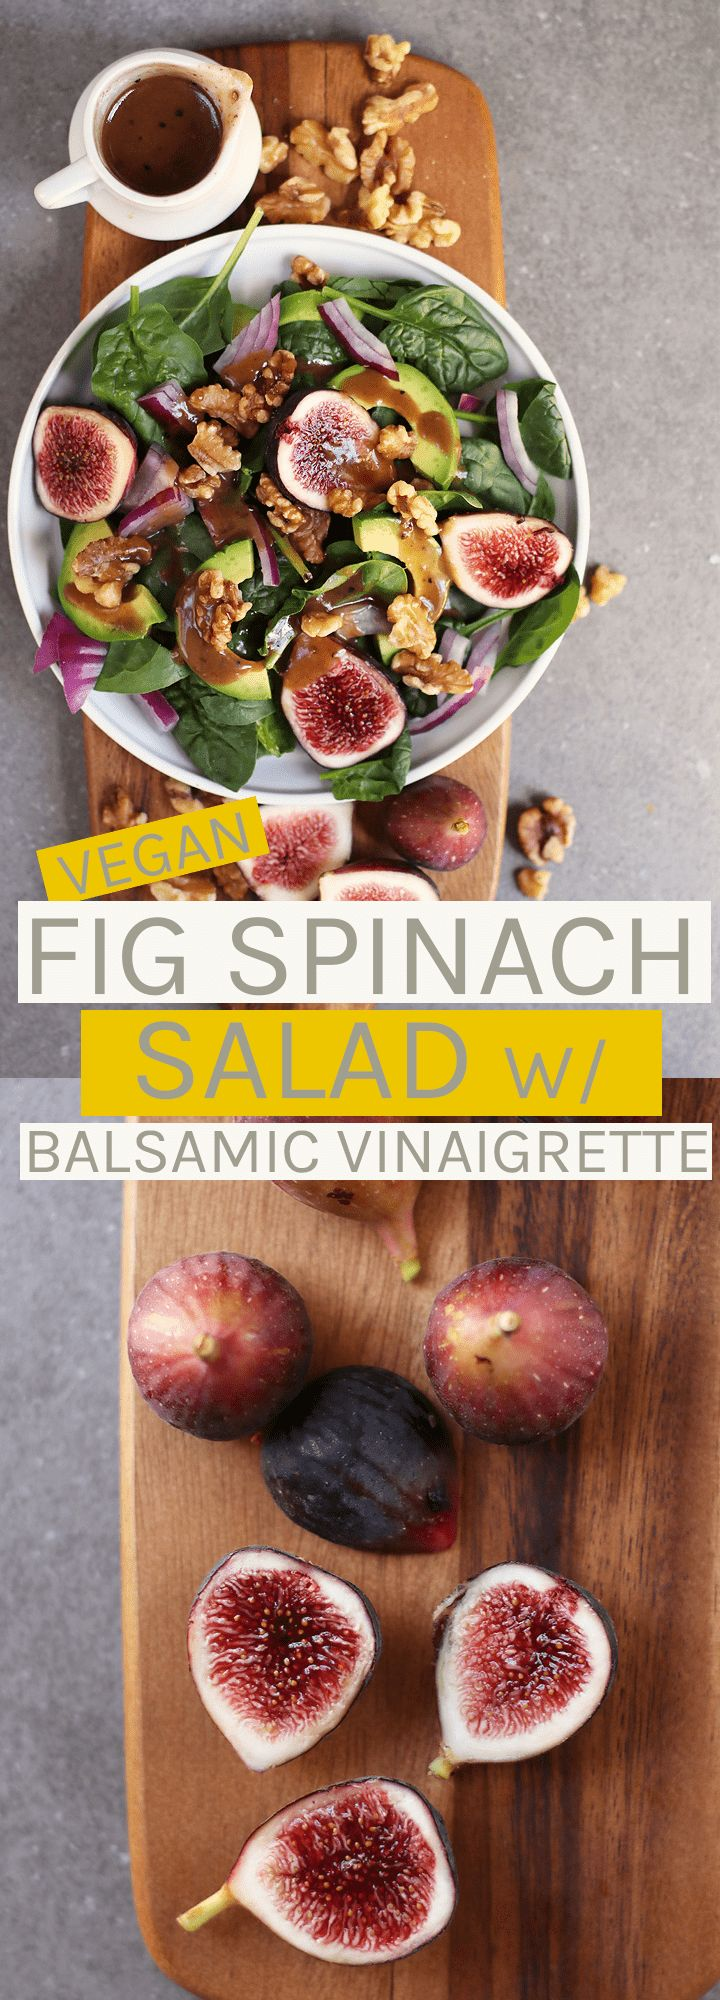 This Spinach Fig Salad is made with fresh figs, avocado, toasted walnuts, and homemade balsamic vina…